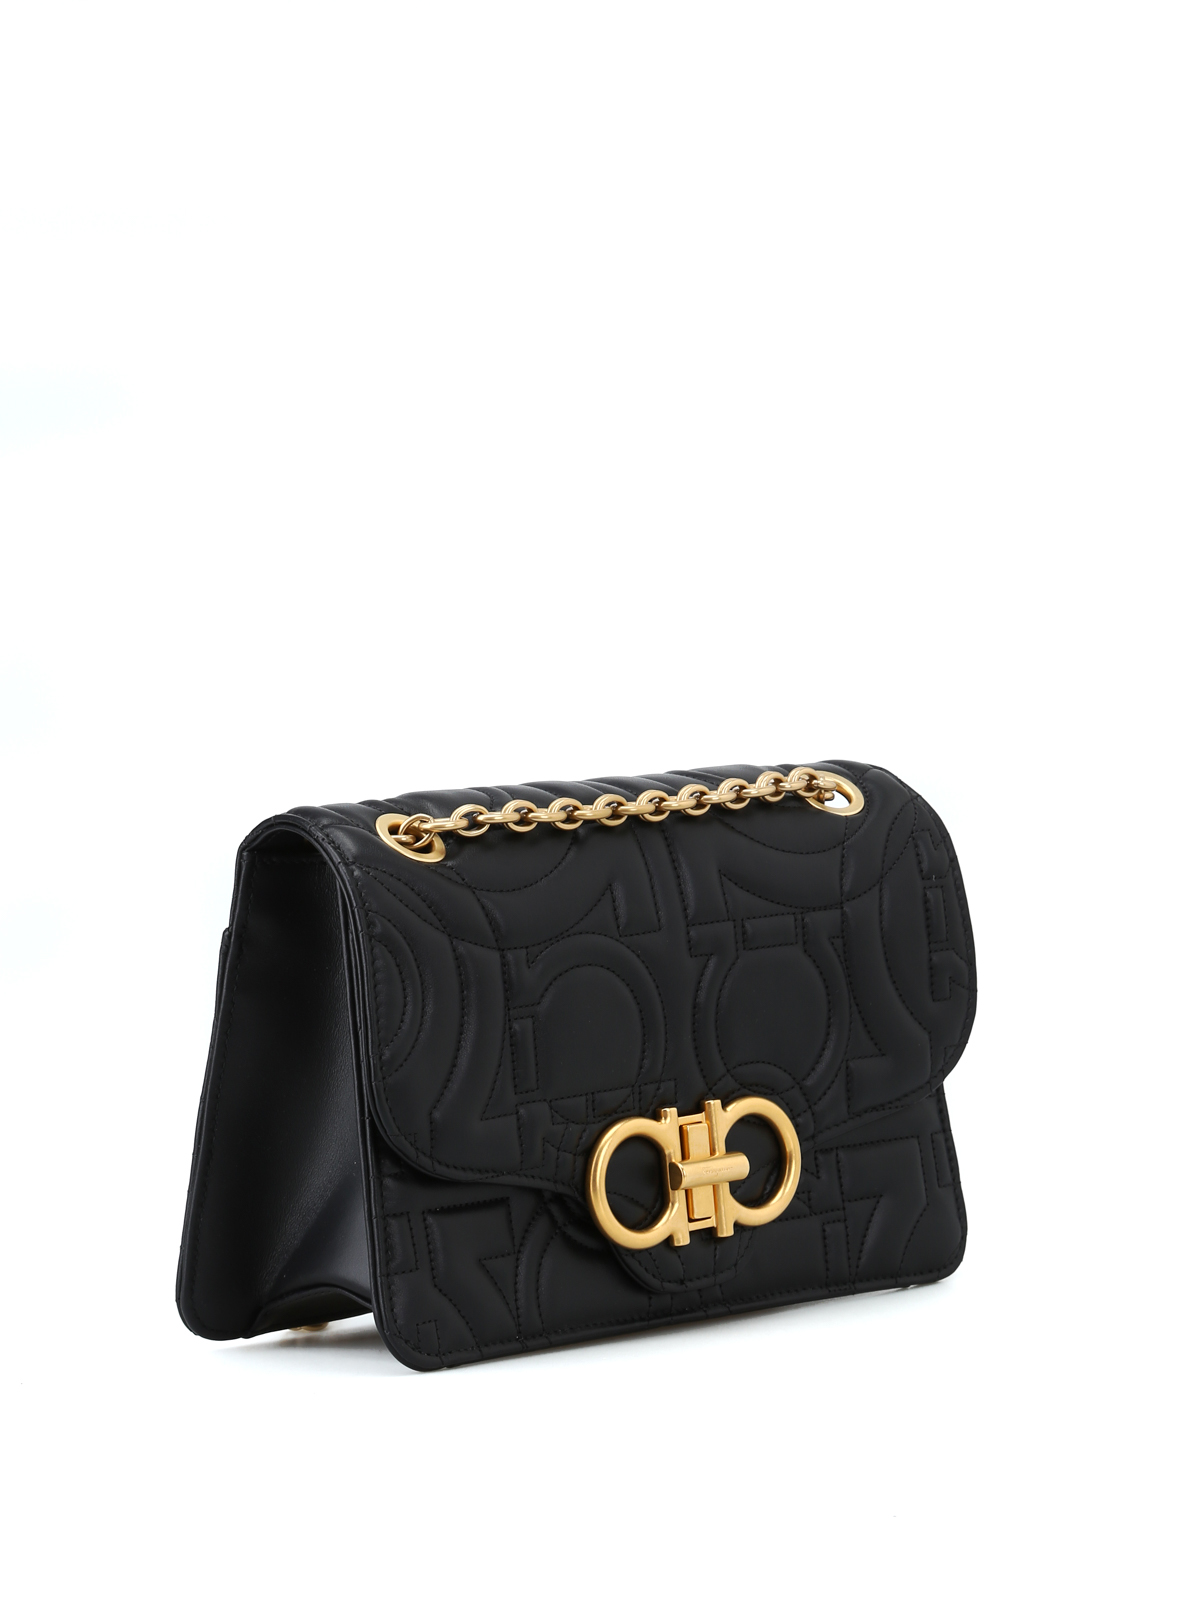 SALVATORE FERRAGAMO  shoulder bags online - Gancini black quilted leather  shoulder bag 08953f5342